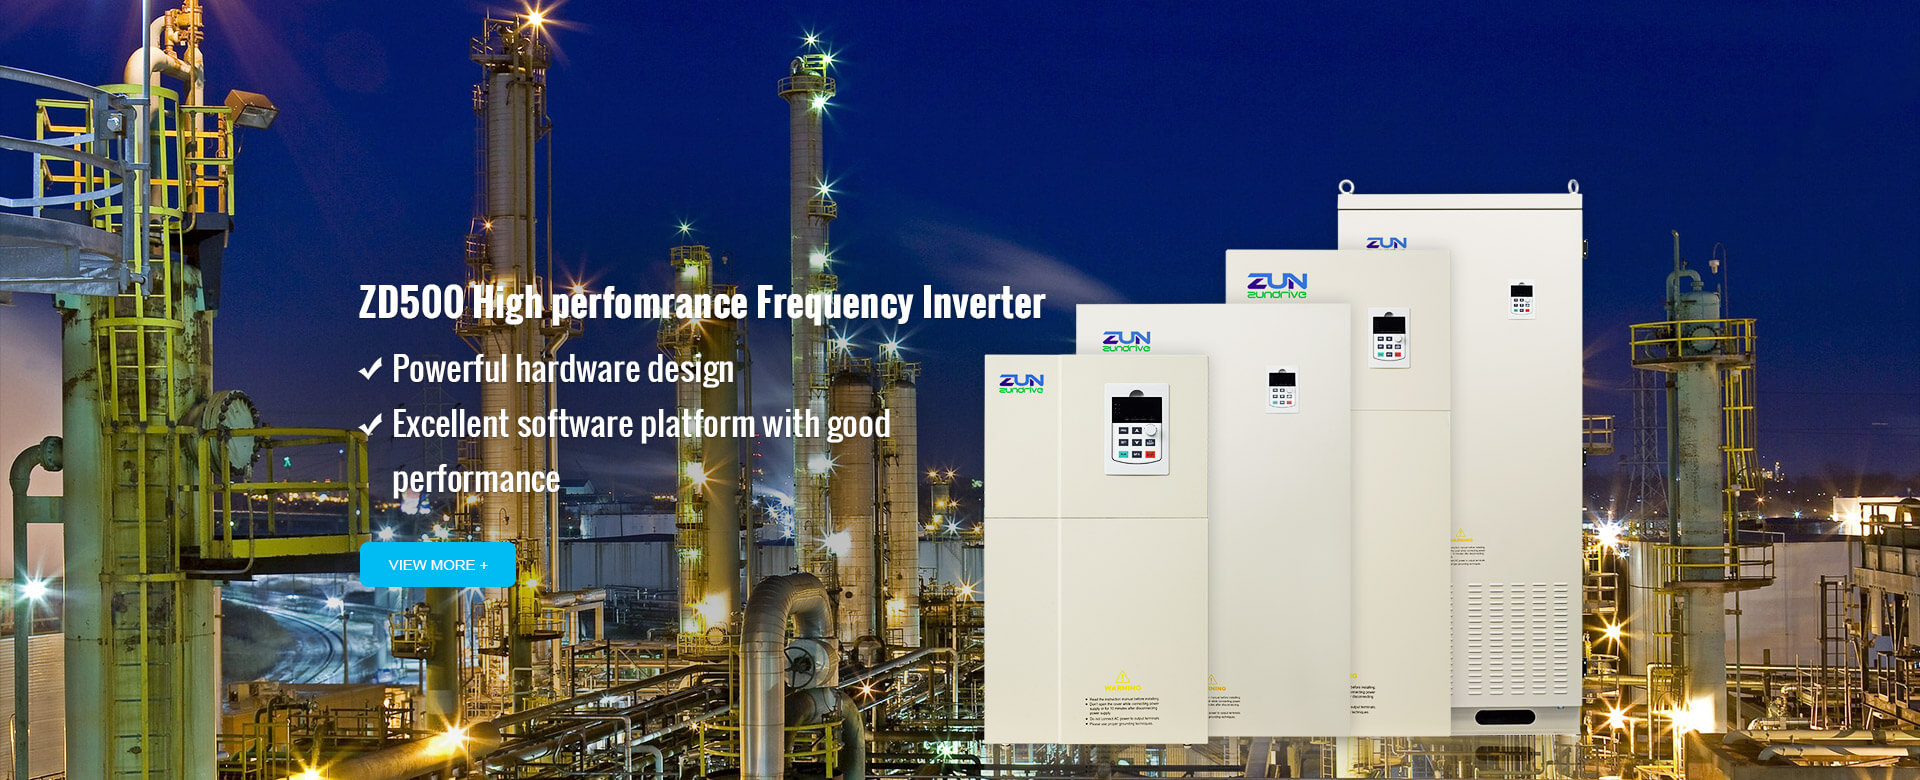 ZD500 High perfomrance Frequency Inverter